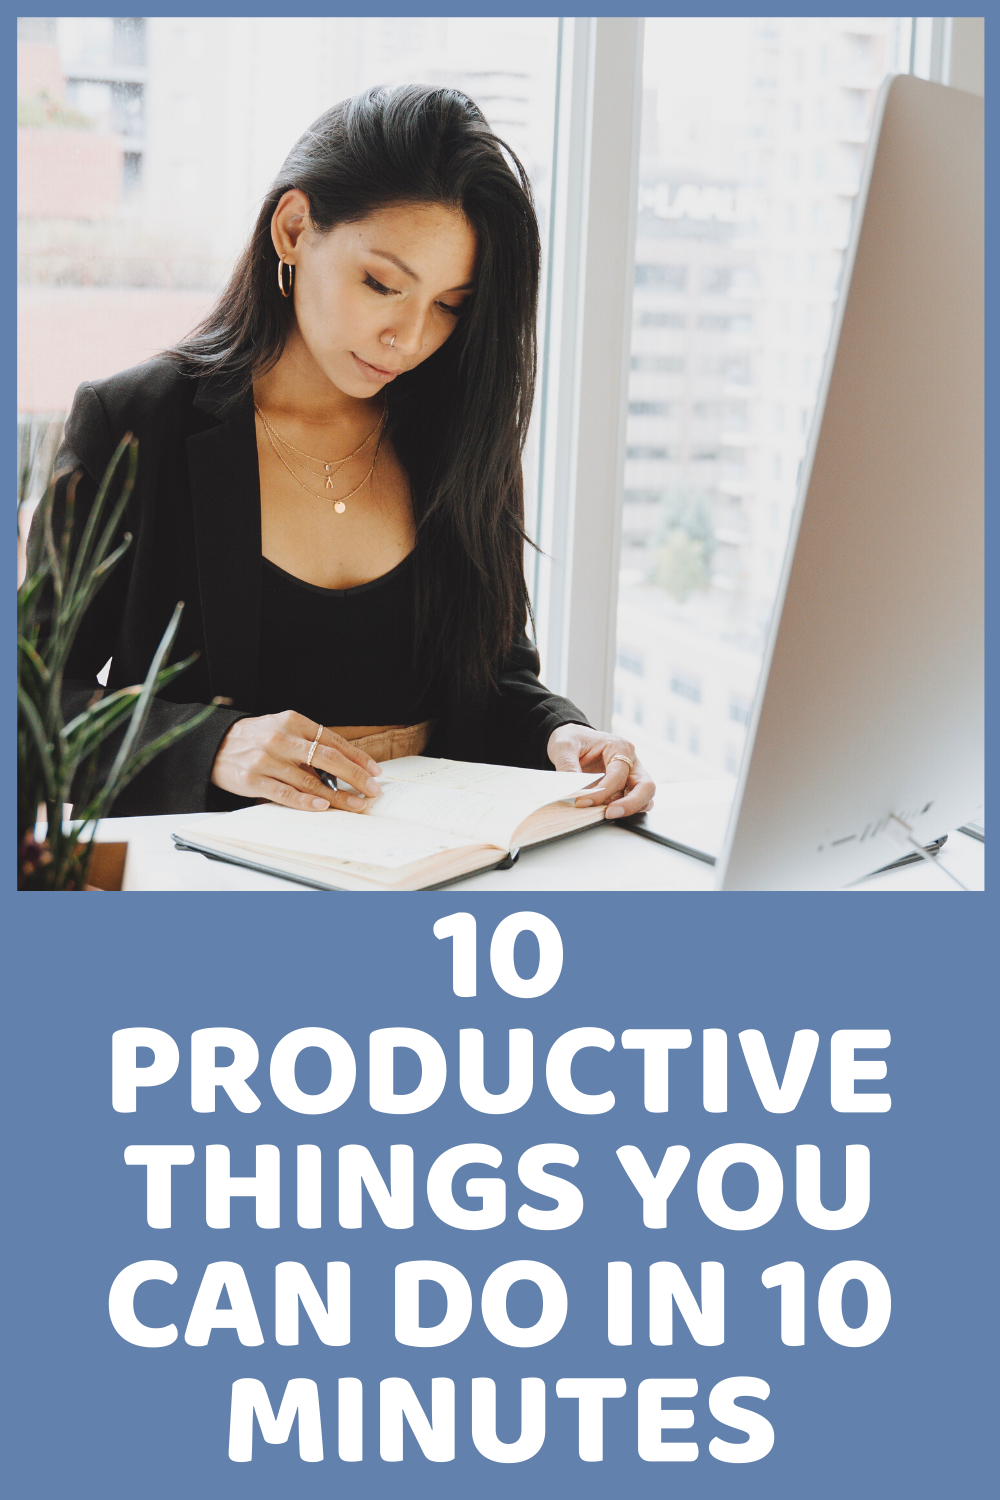 10 Productive Things You Can Do In 10 Minutes